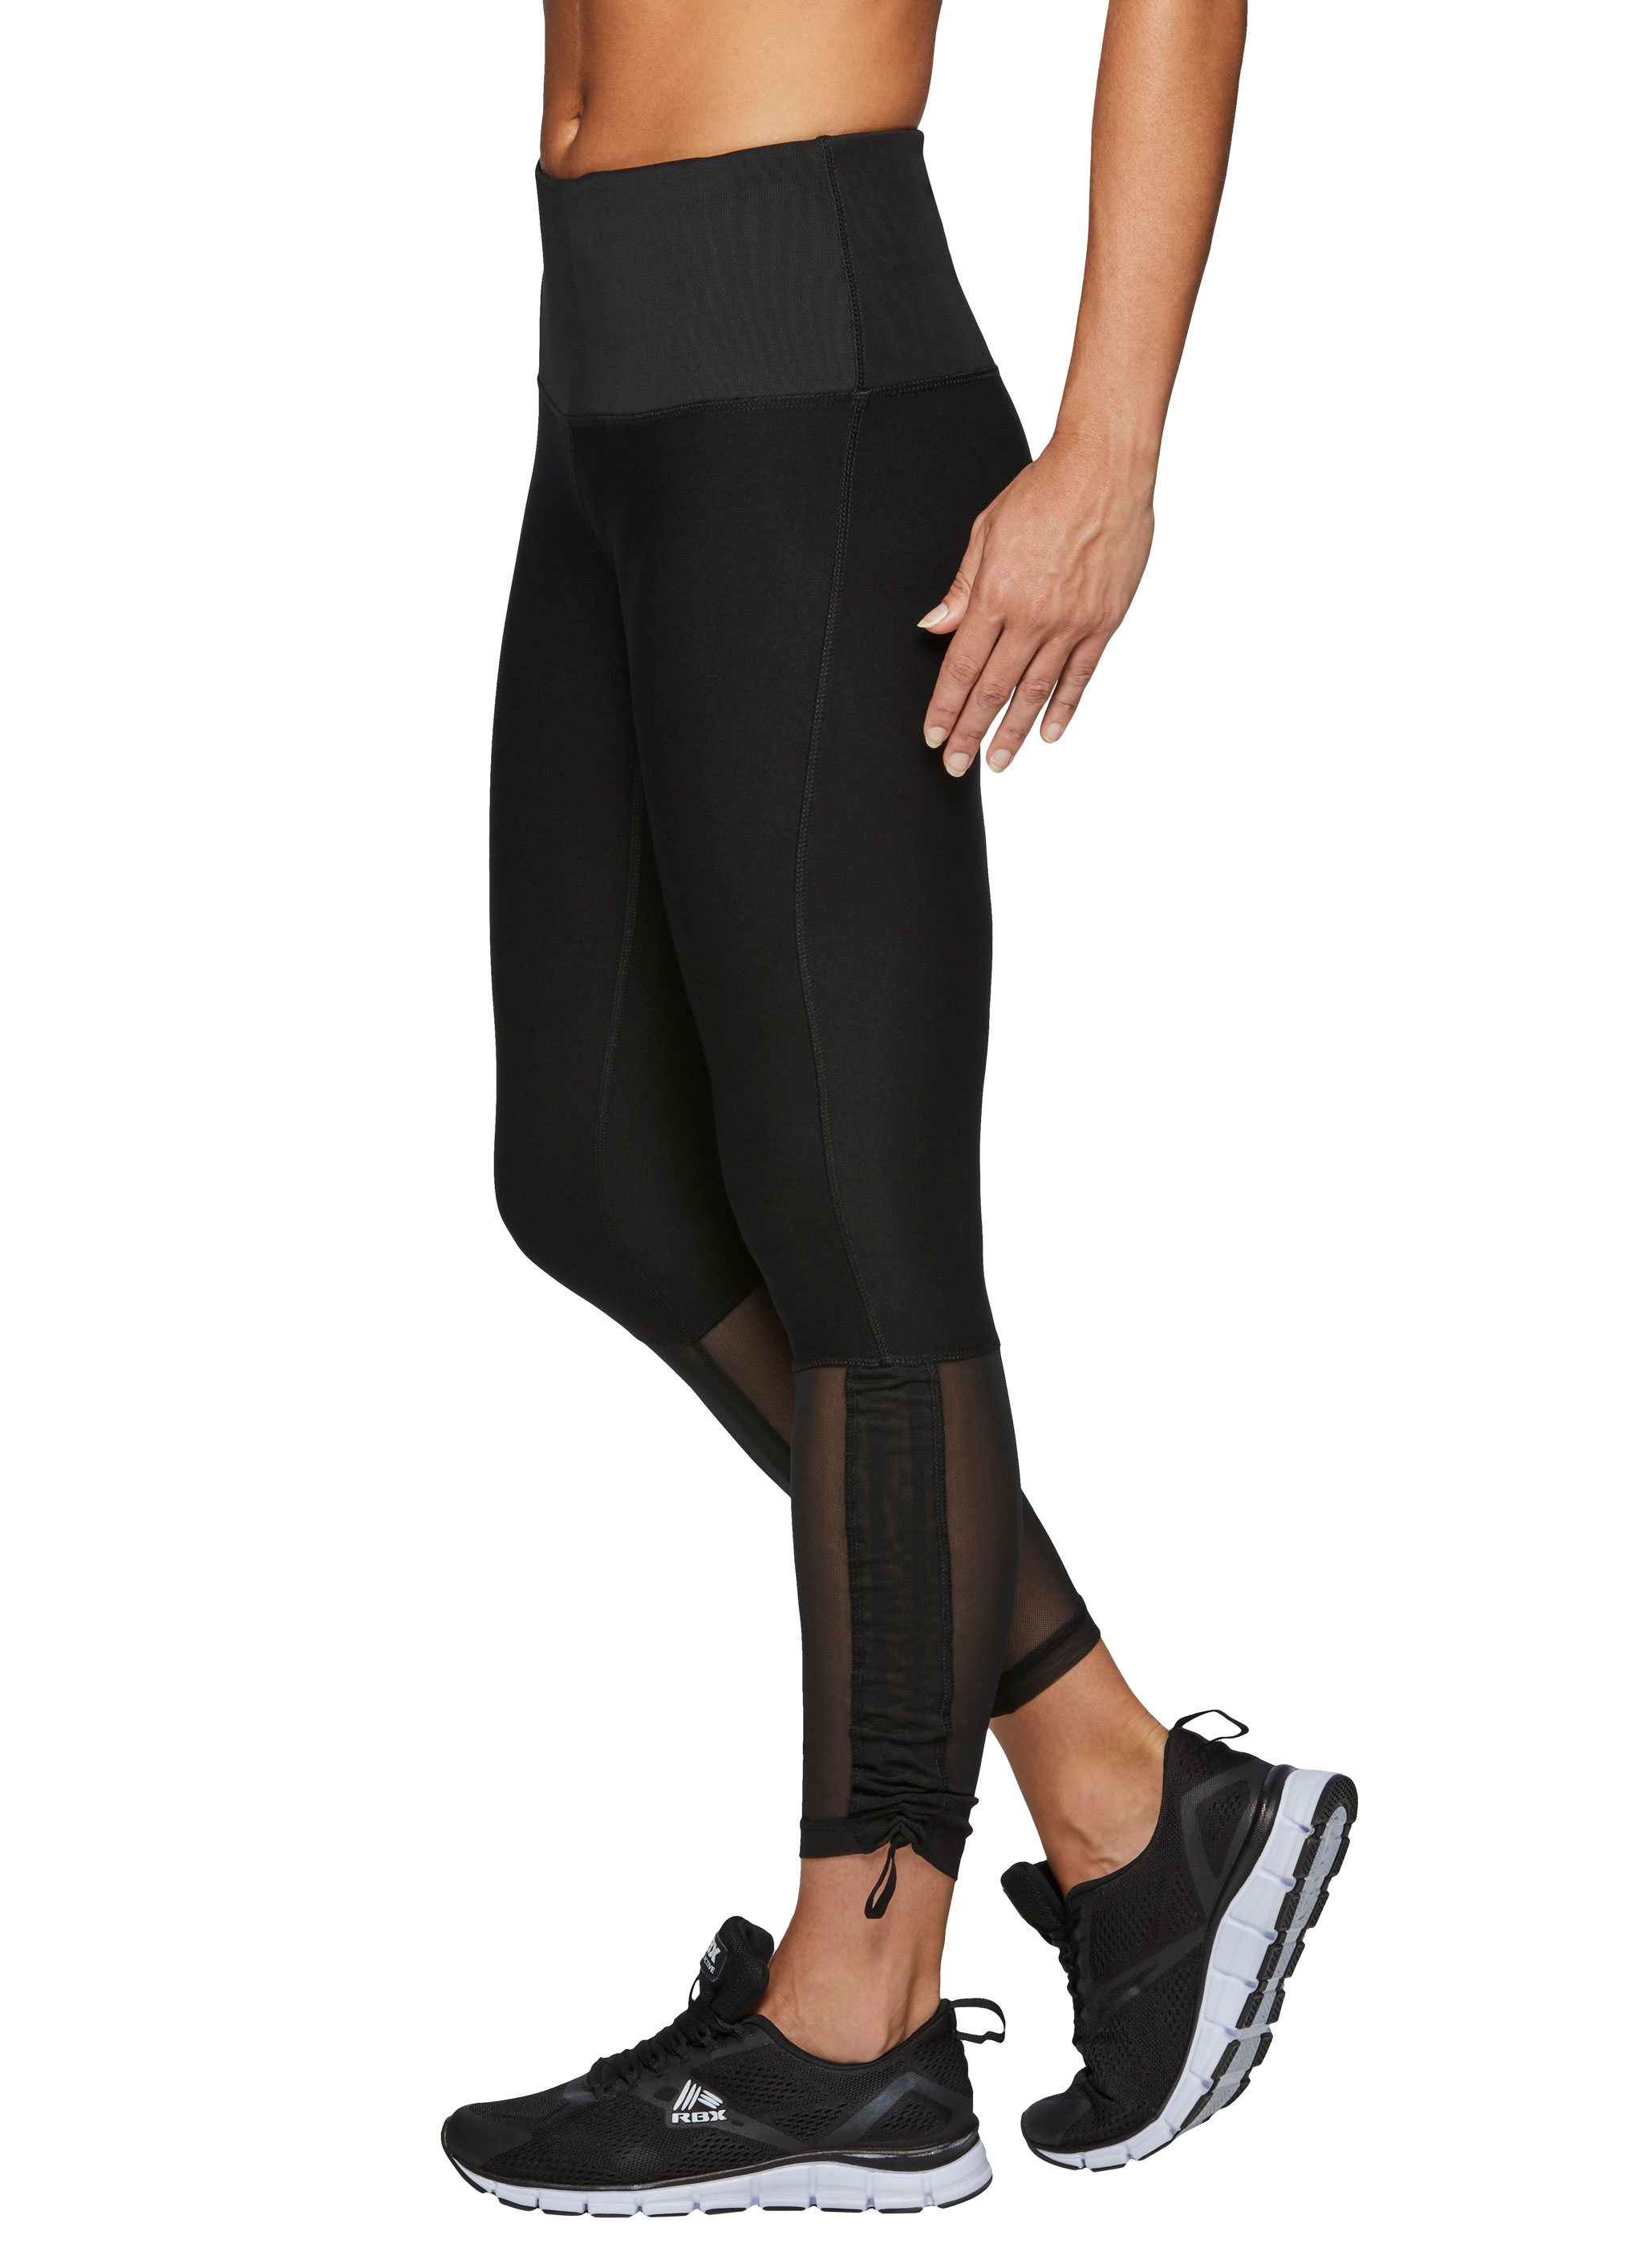 "Women's Active 27"" Inseam Legging"